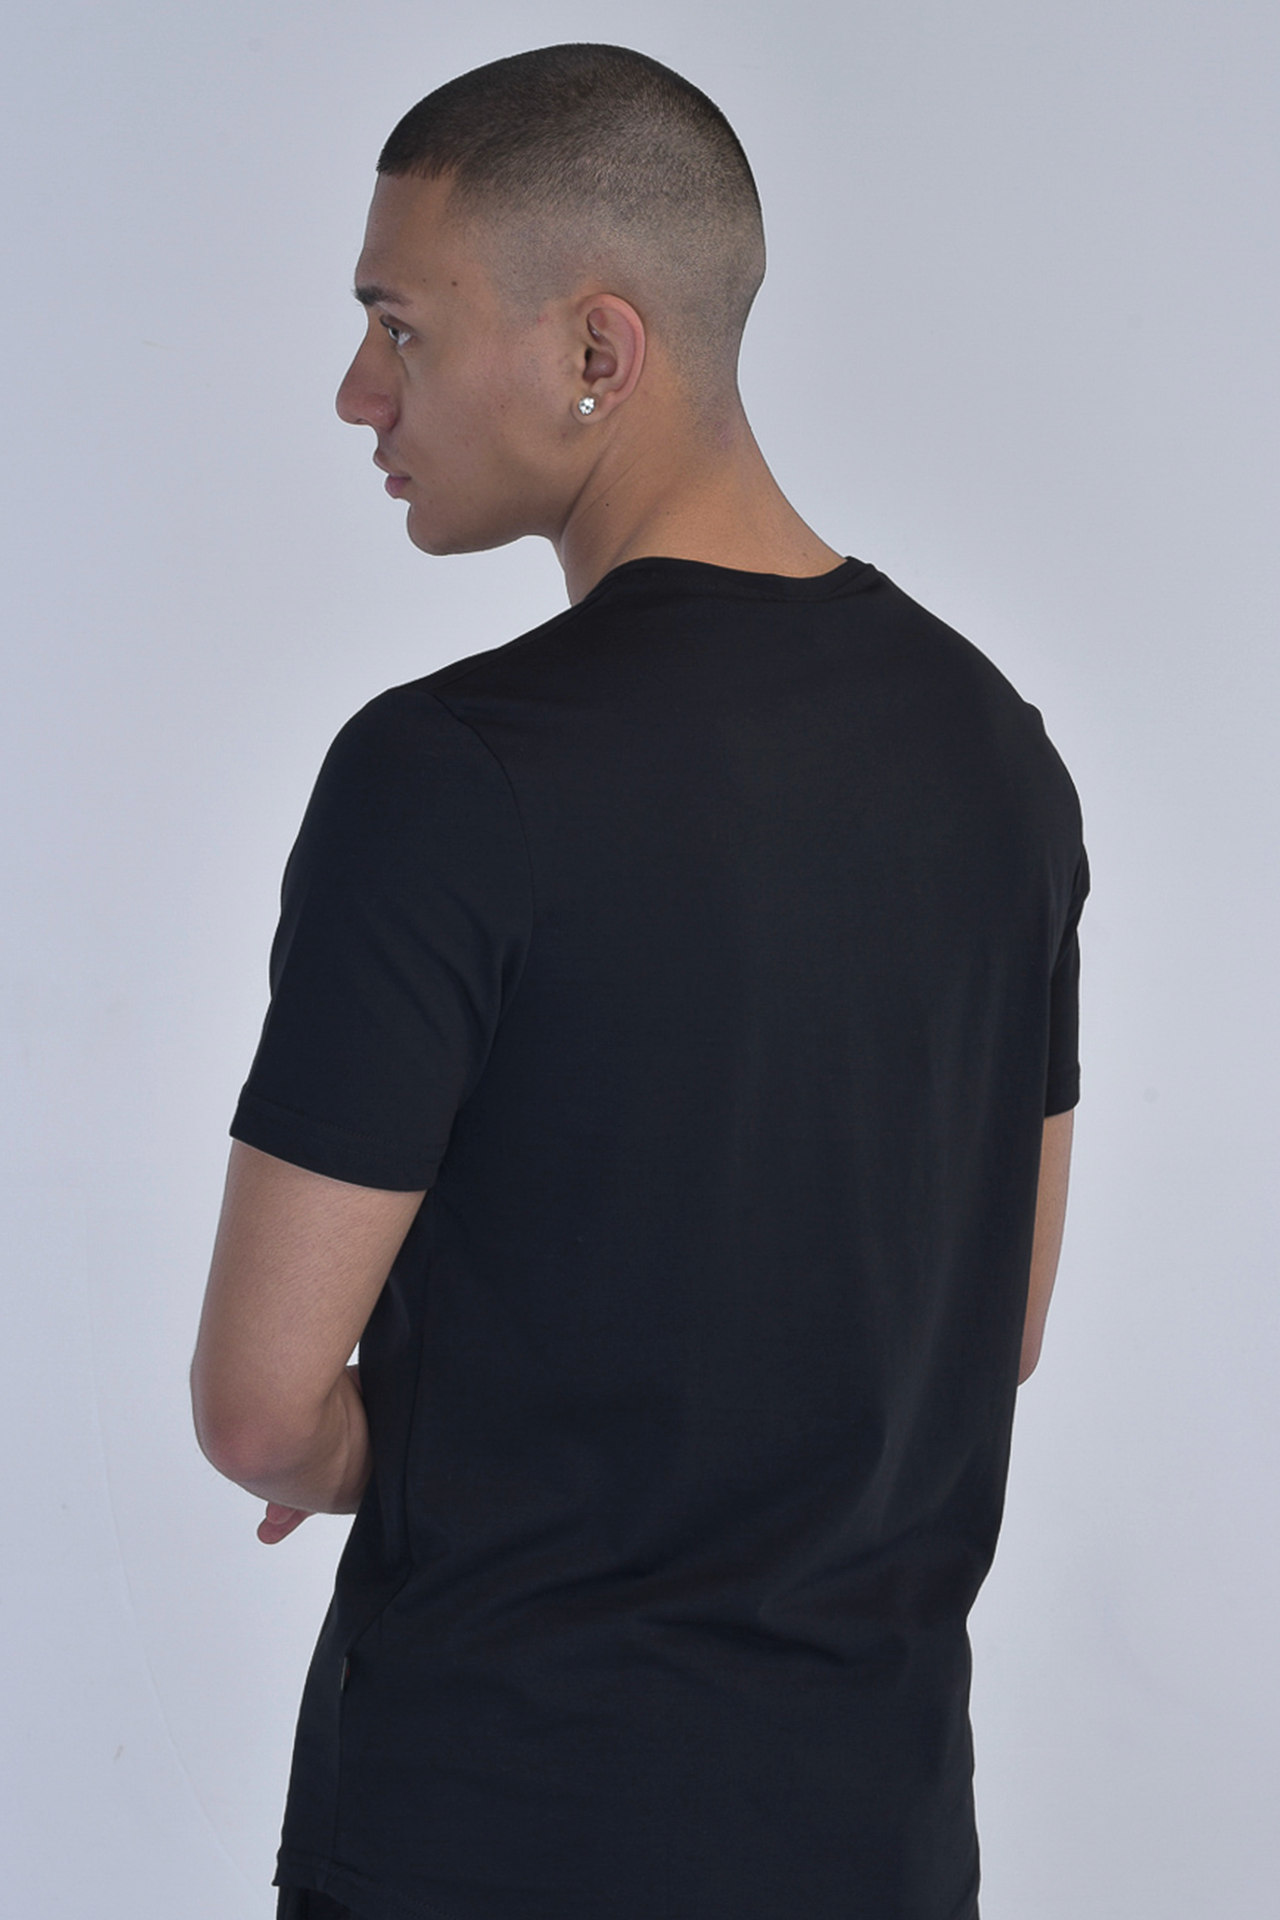 """APOTEOSI"" - T-shirt con patch in rete"